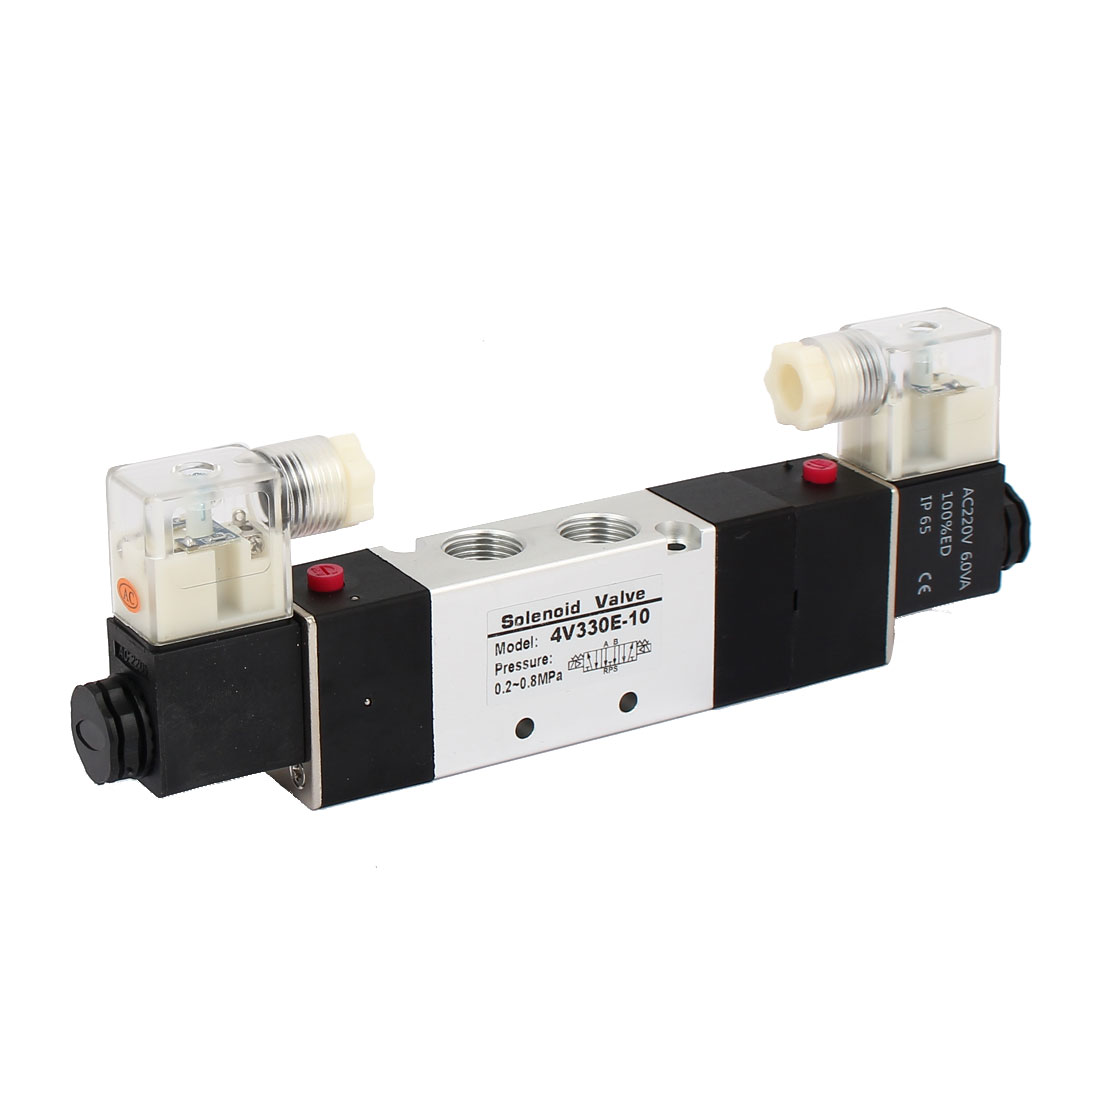 AC 220V 3 Position 5 Way Double Head Pneumatic Solenoid Air Valve 4V330E-10